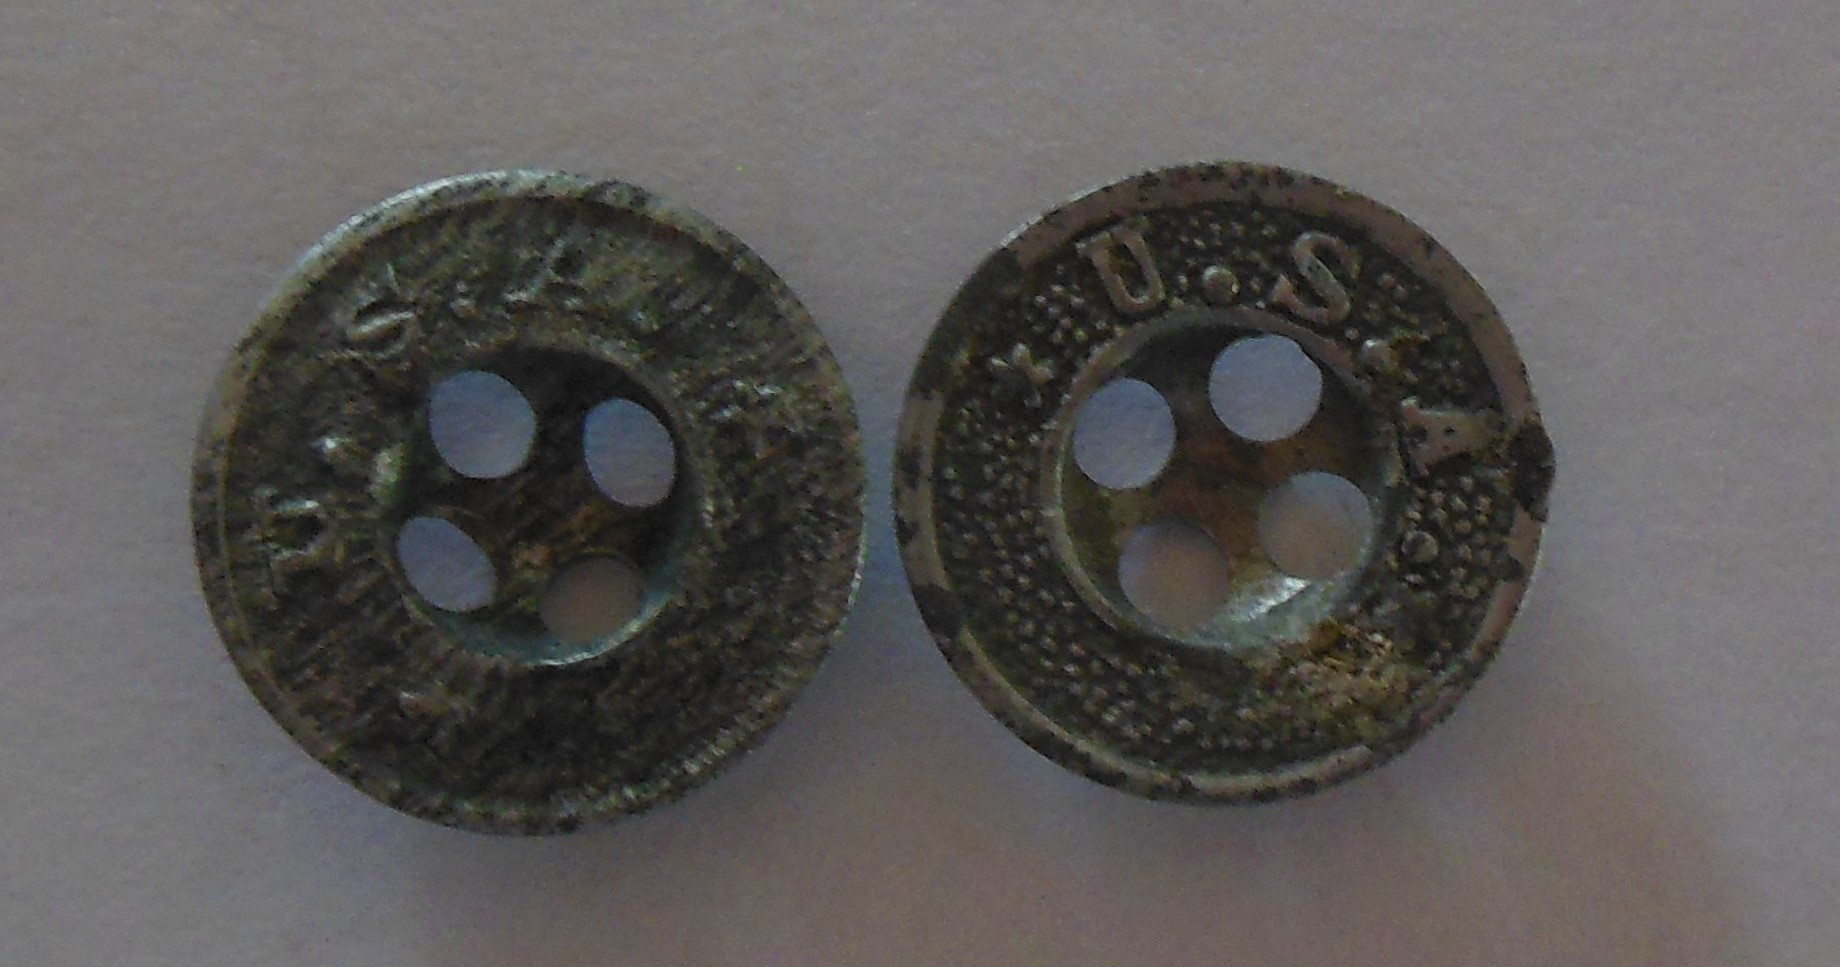 World War I era Pant buttons. It looks like these two had some hard use.